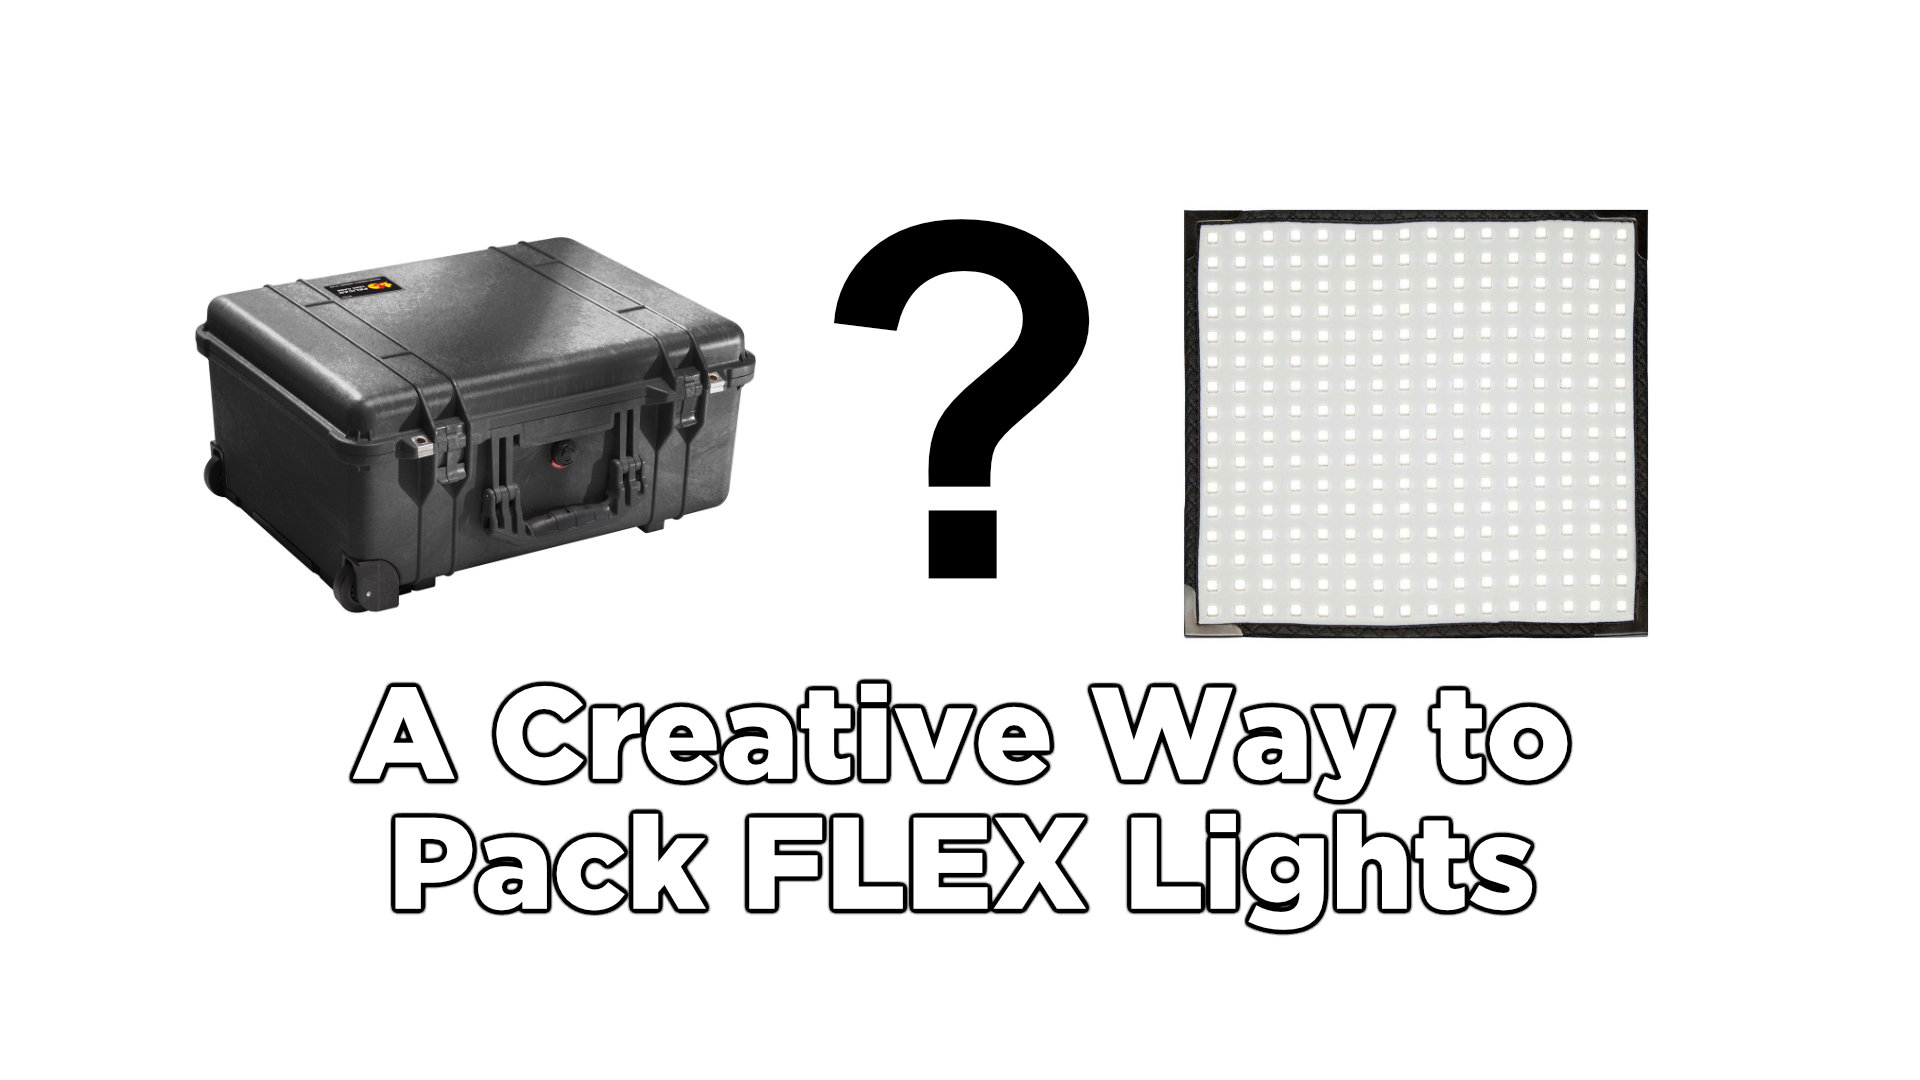 A Creative Way to Pack Flex Lights